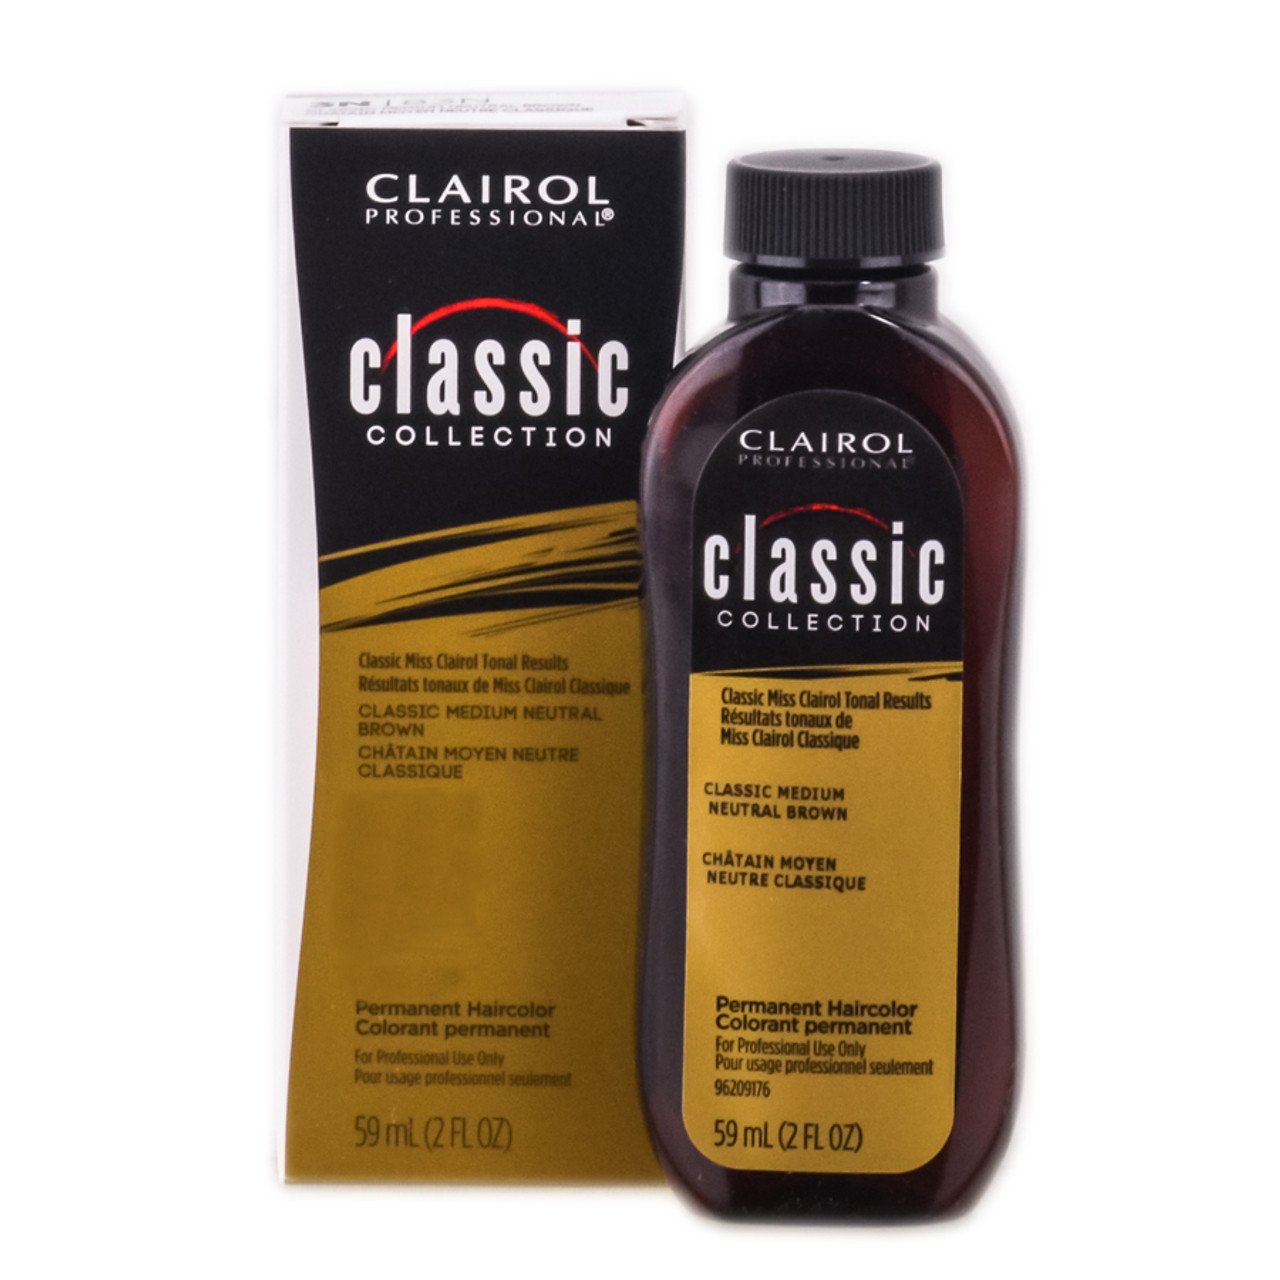 Clairol Professional Classic Collection Permanent